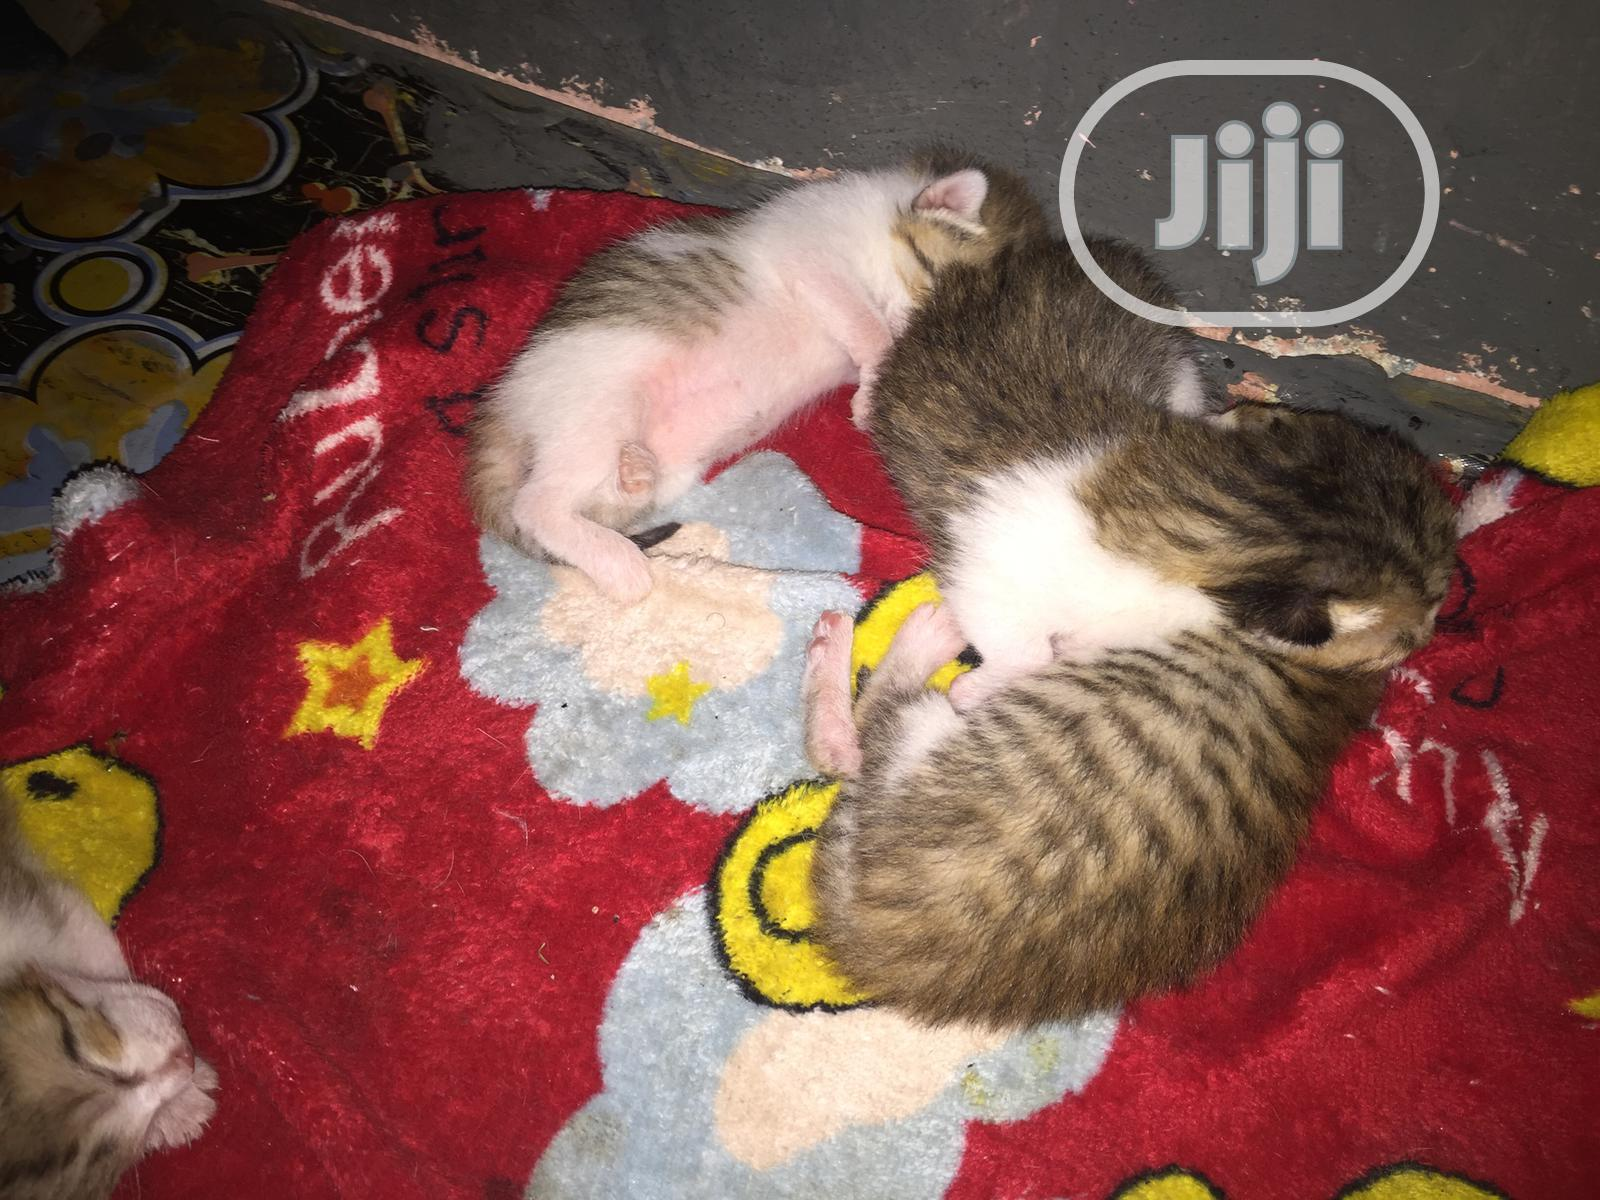 Archive: 0-1 month Female Mixed Breed American Shorthair